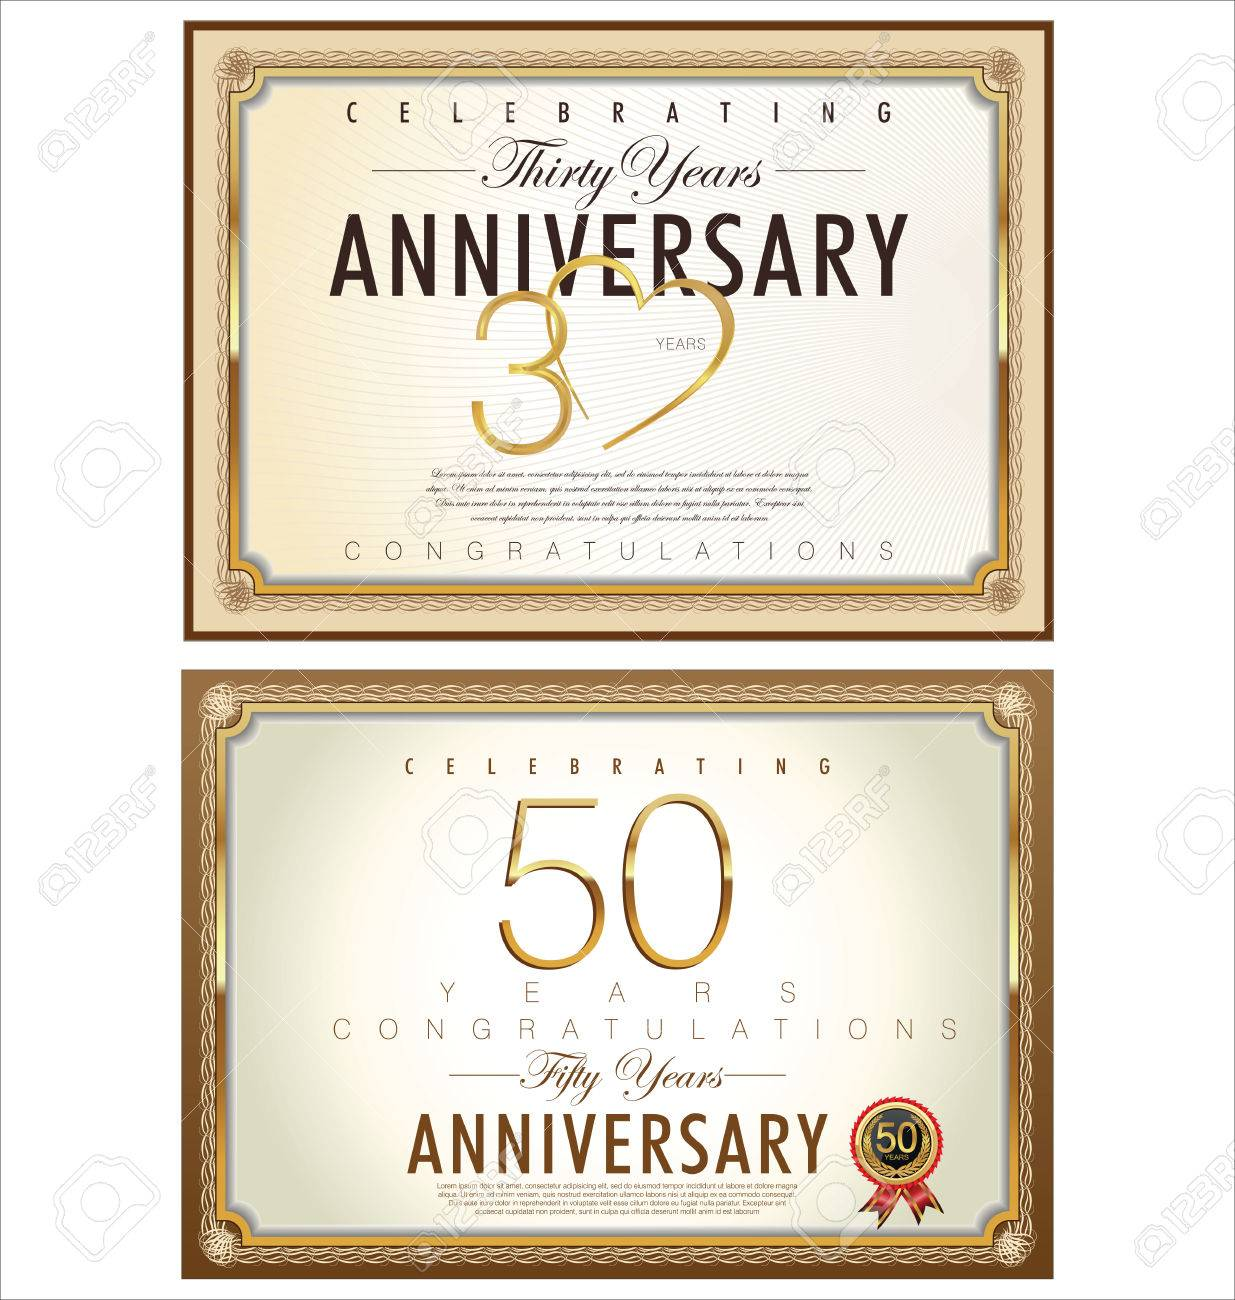 anniversary certificate template royalty free cliparts vectors and